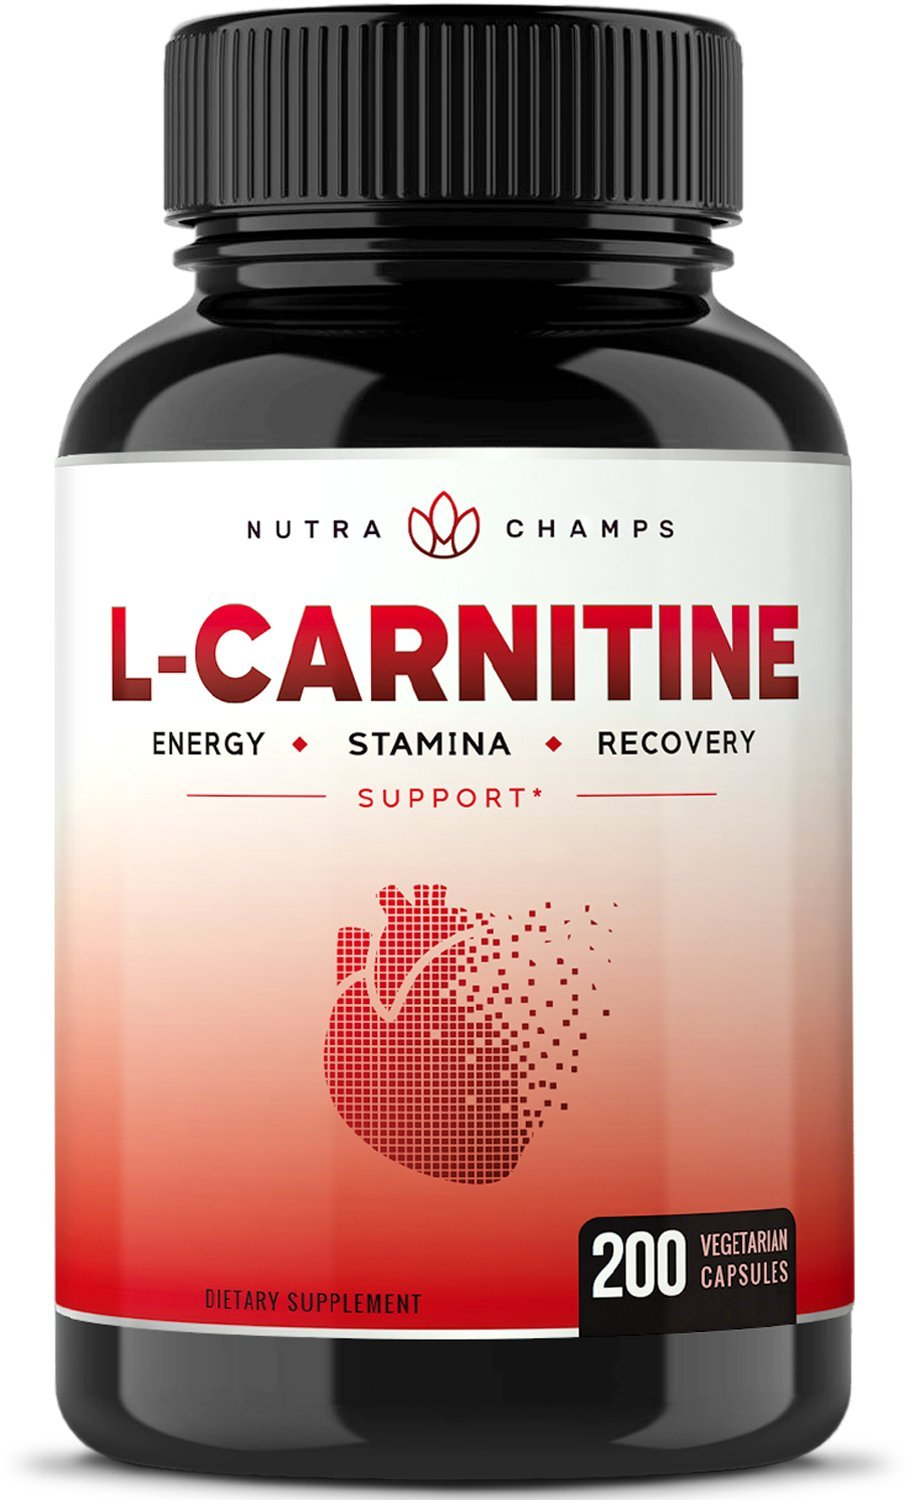 L-Carnitine 1000mg - 200 Vegan Capsules for Energy, Stamina, Recovery, Fat Metabolization, Heart Health, Weight Loss - Best Value Vegetarian L Carnitine 500mg Pills by NutraChamps